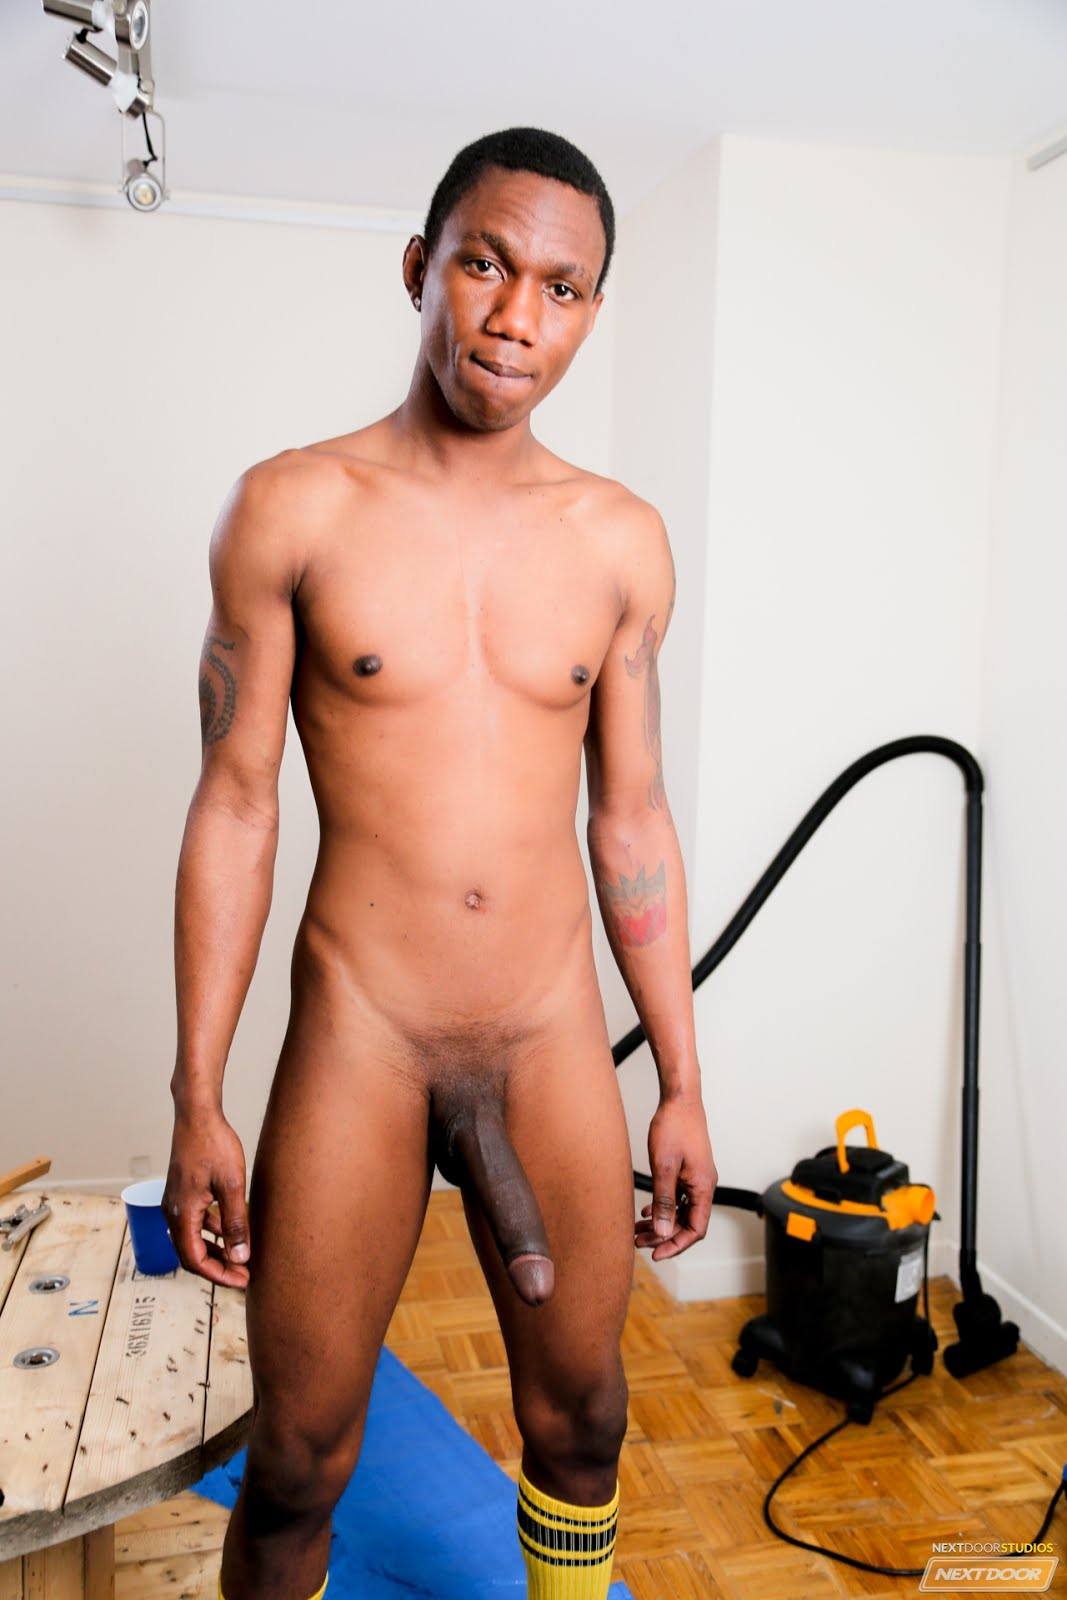 Giant Black Dick Tumblr